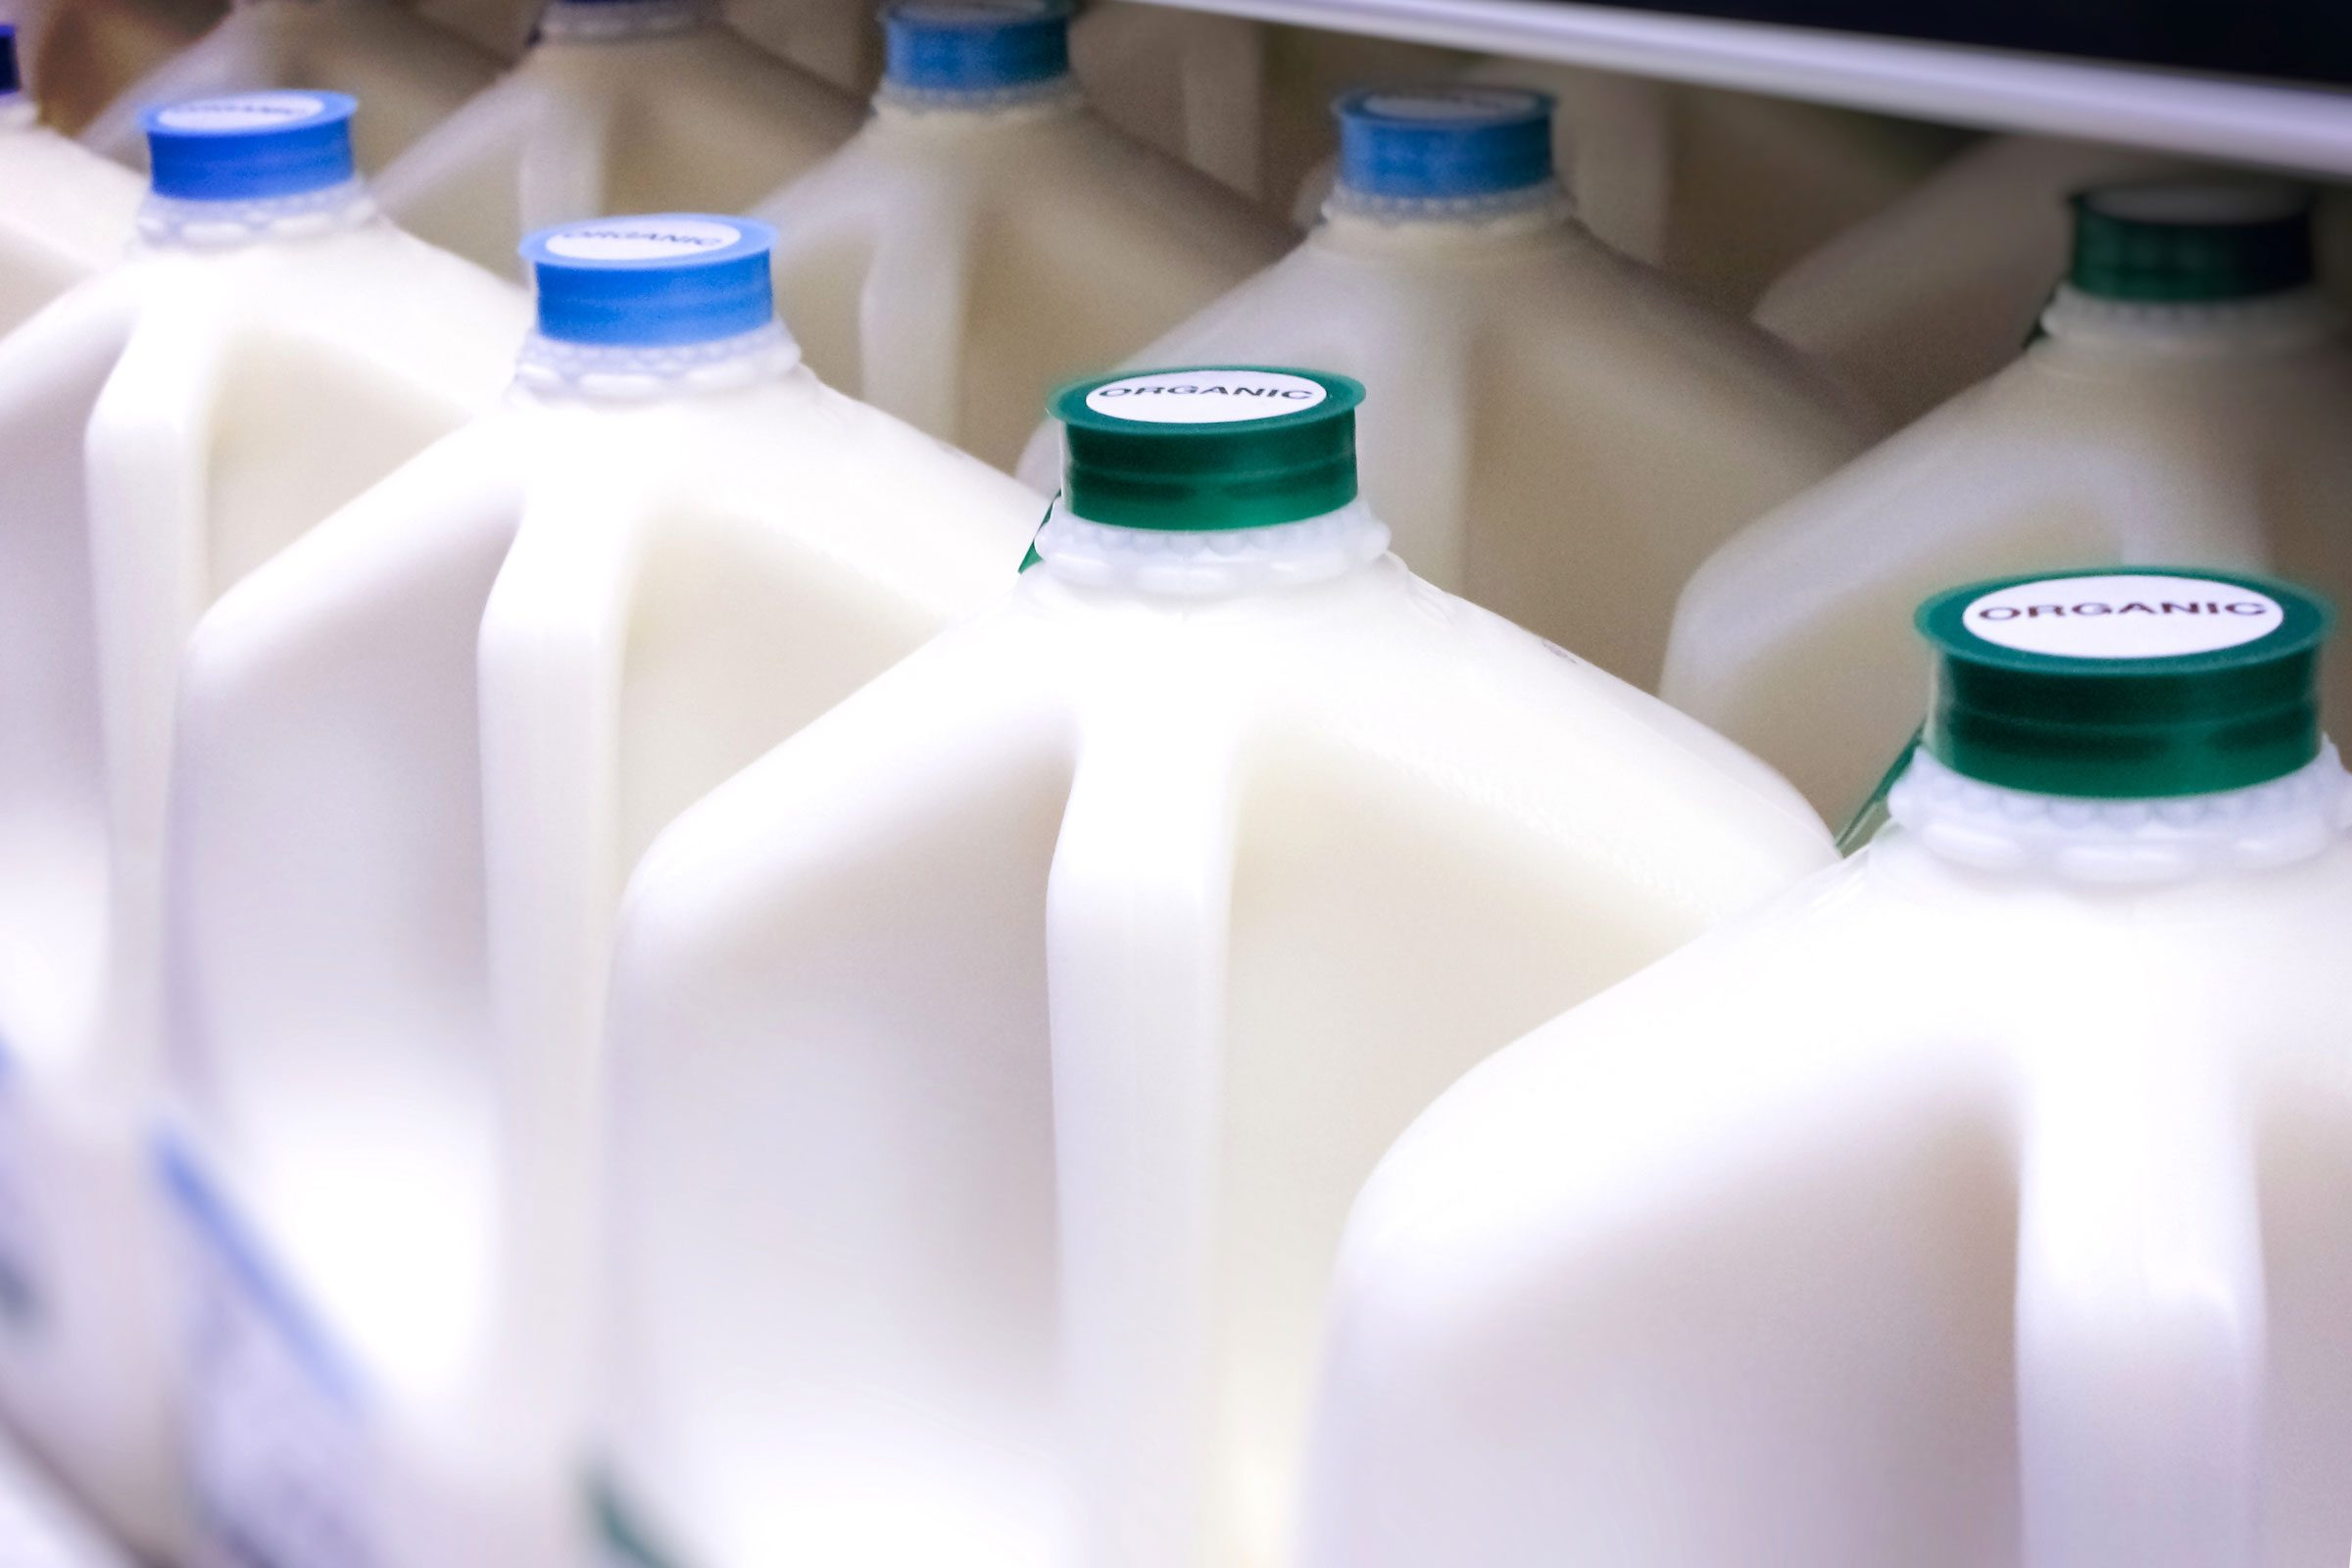 jugs of milk in a store refrigerator